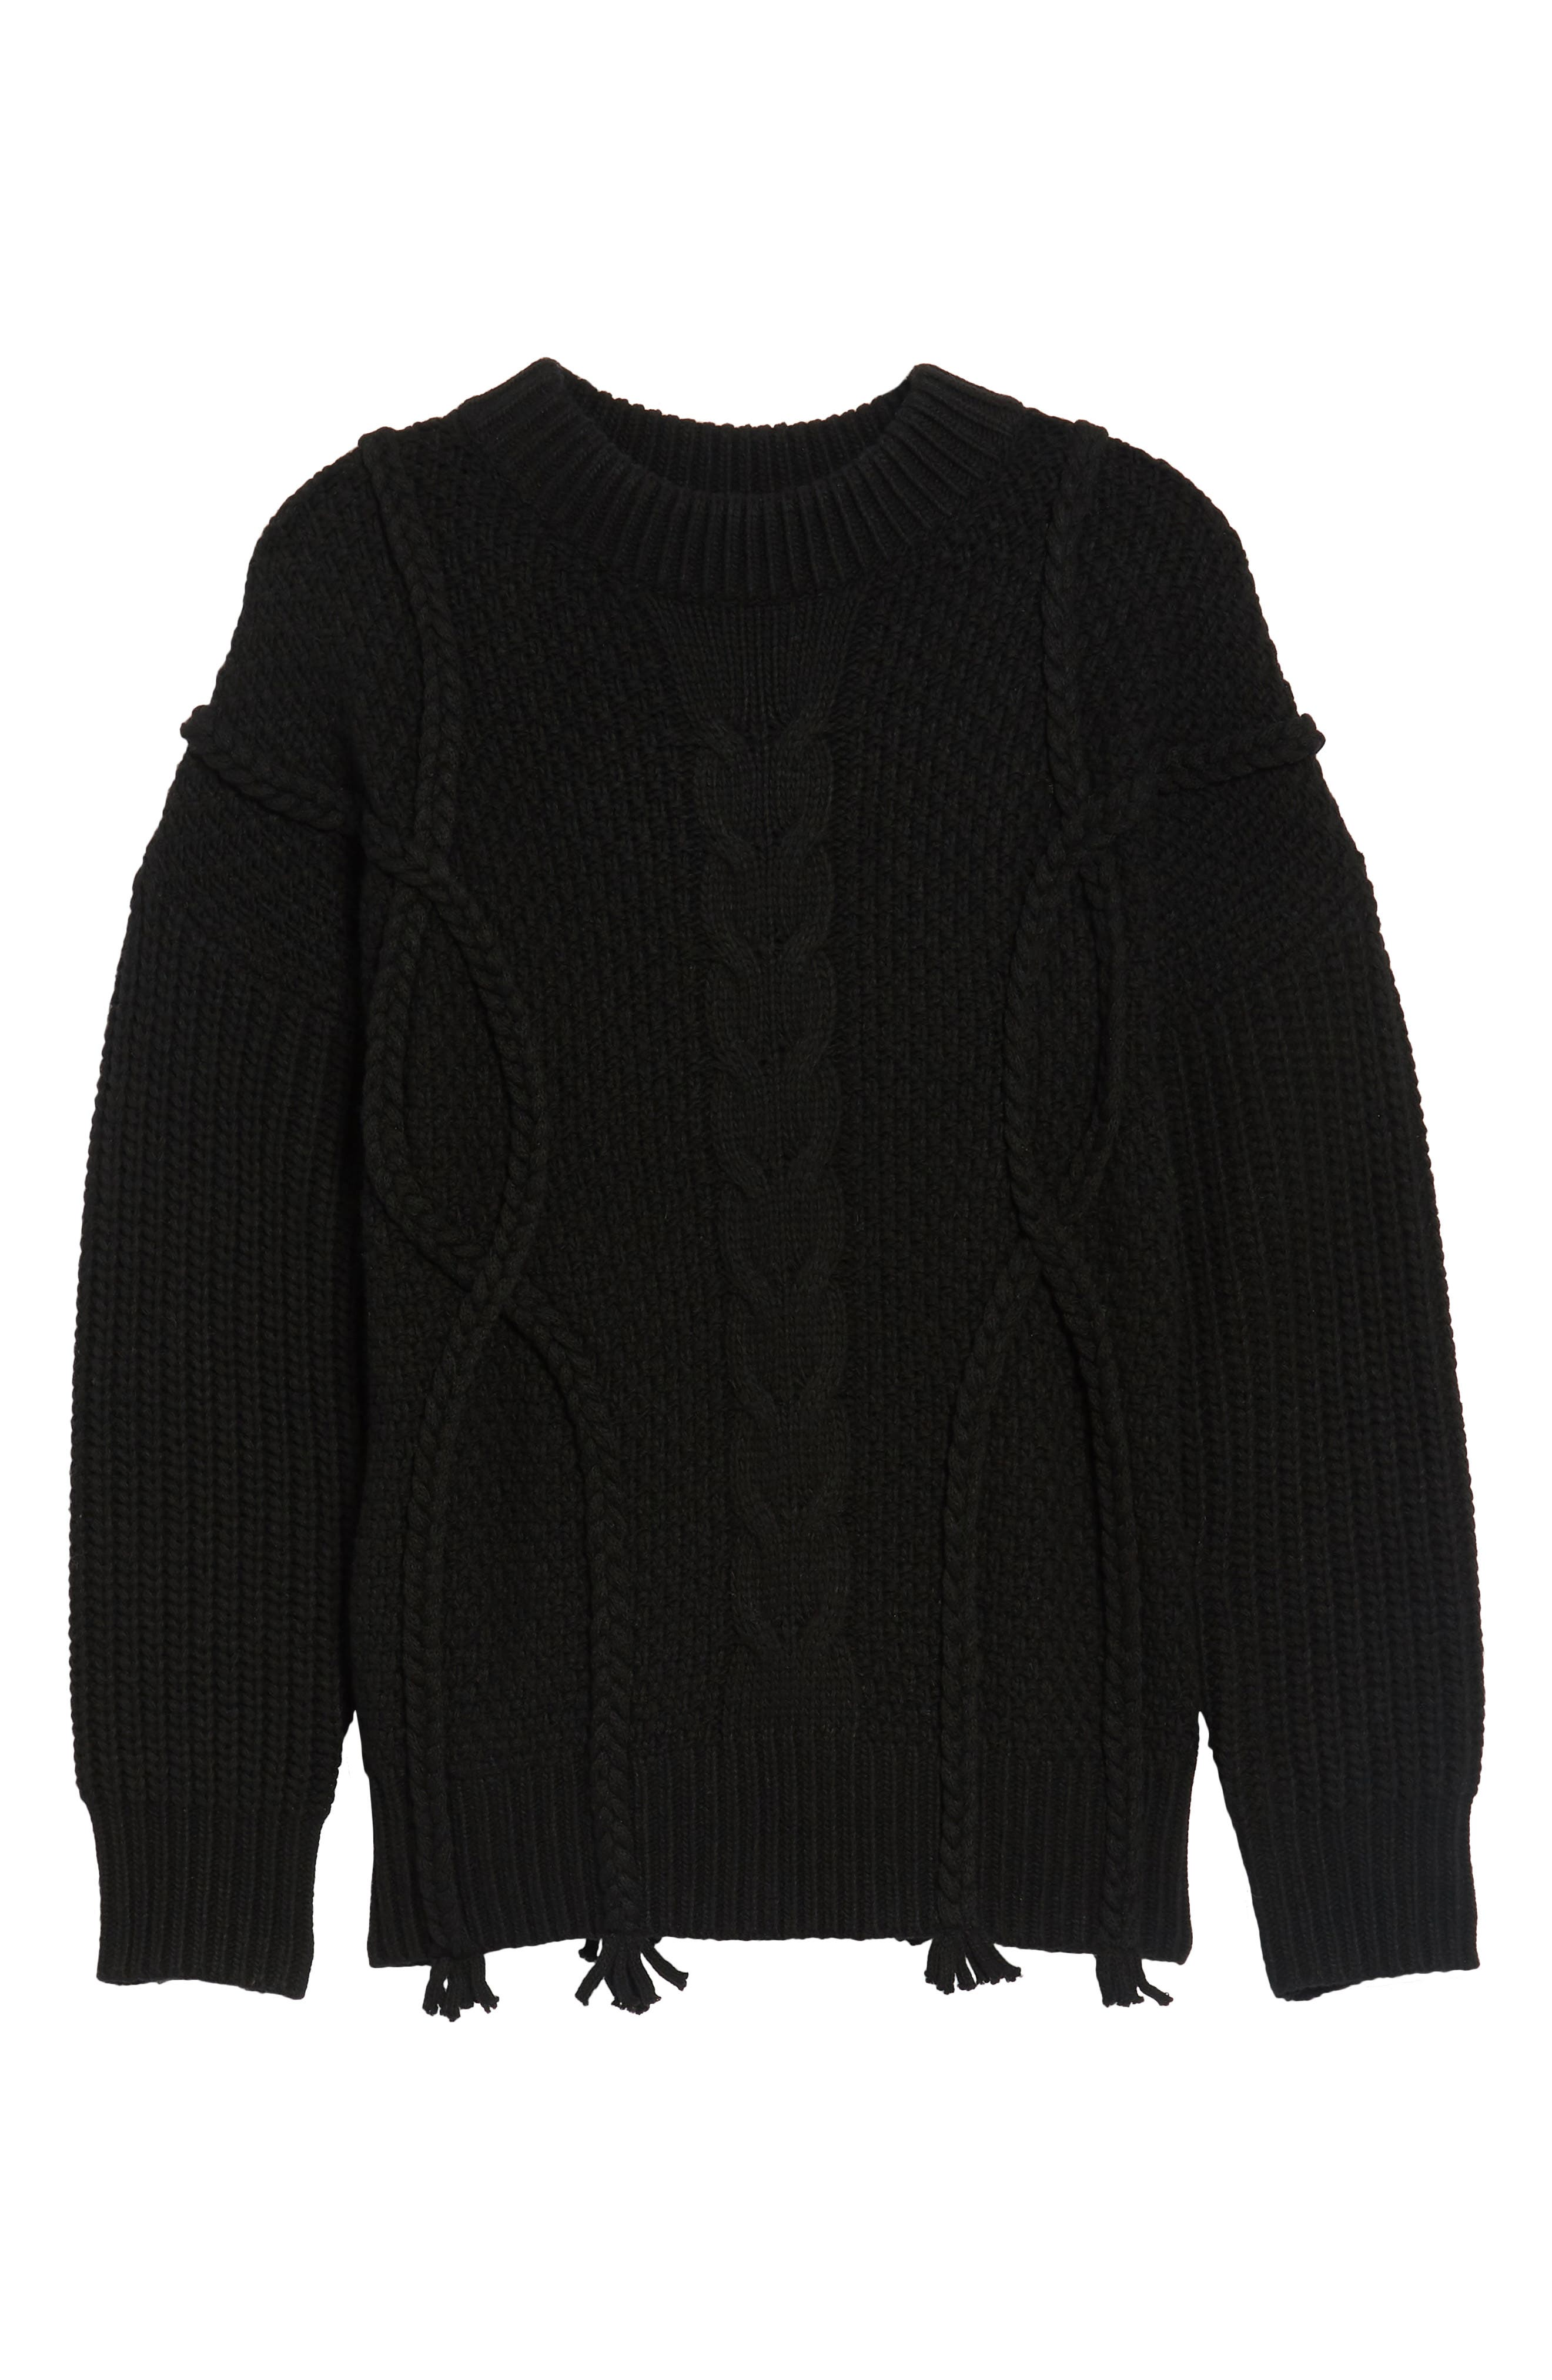 Plaited Cable Knit Sweater,                             Alternate thumbnail 6, color,                             001